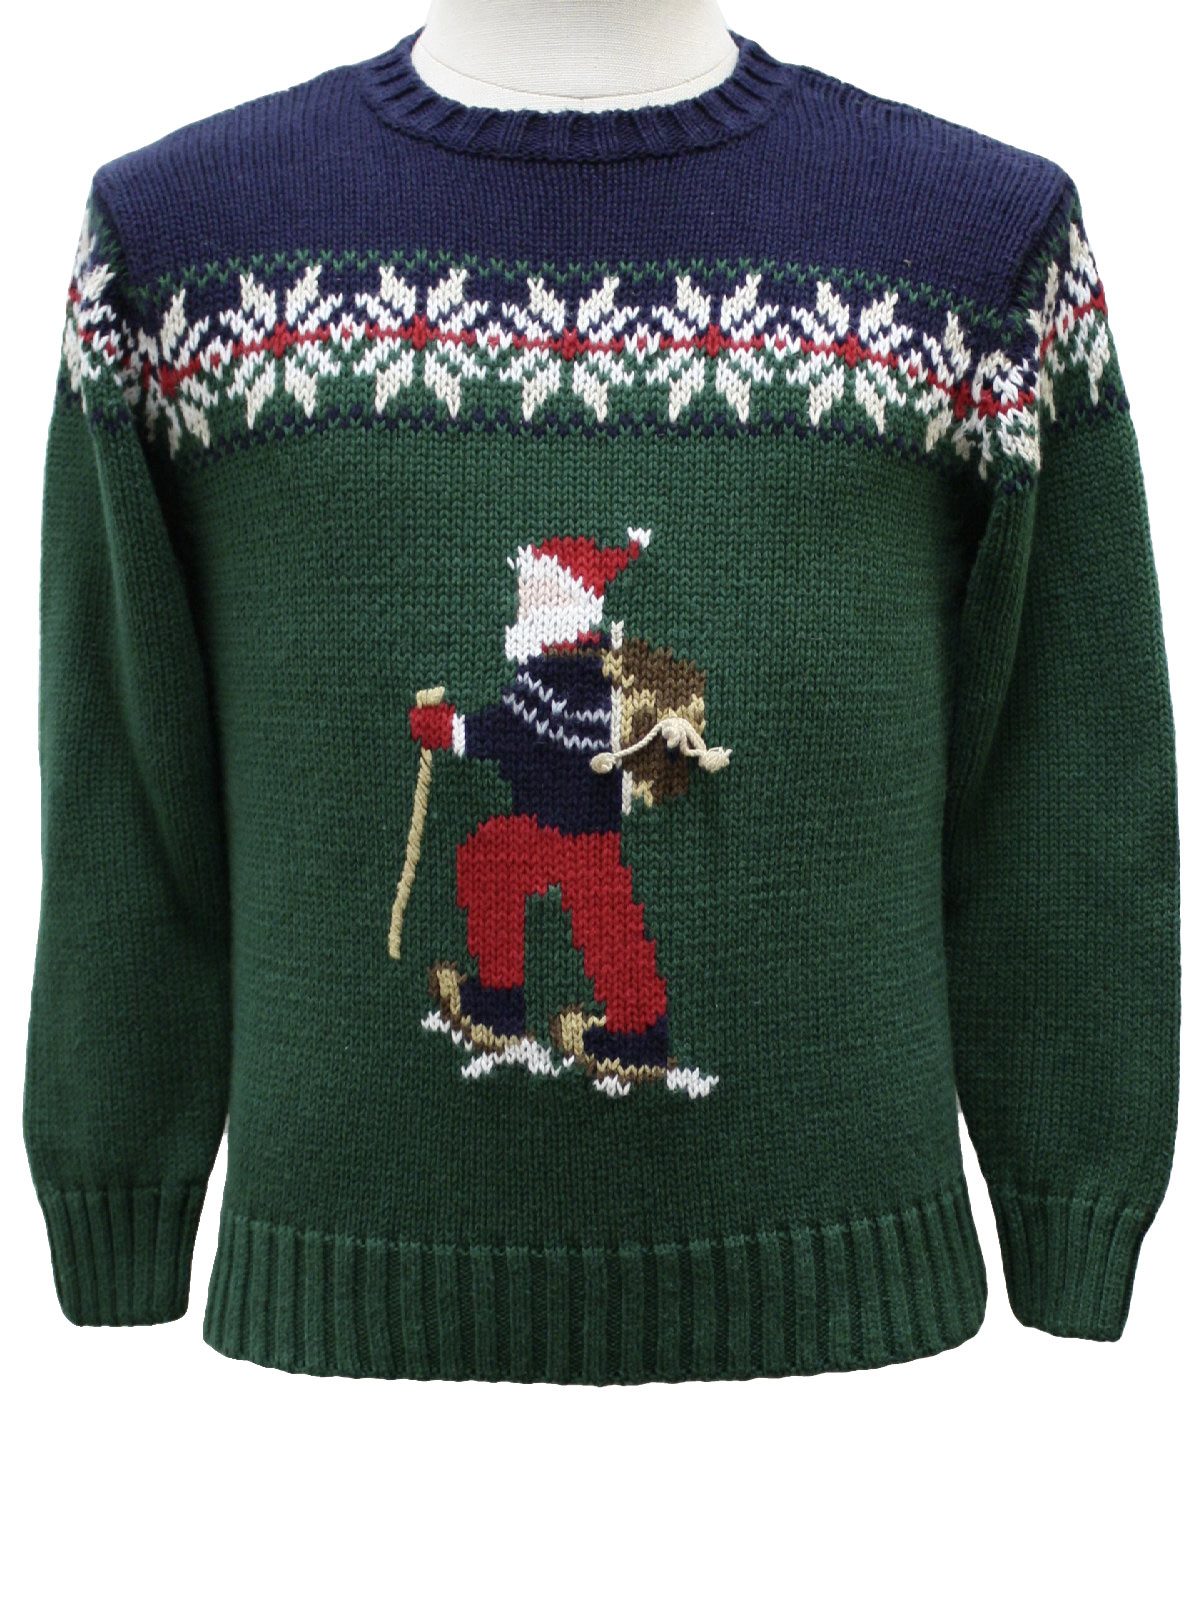 Find great deals on eBay for boys christmas sweater. Shop with confidence.